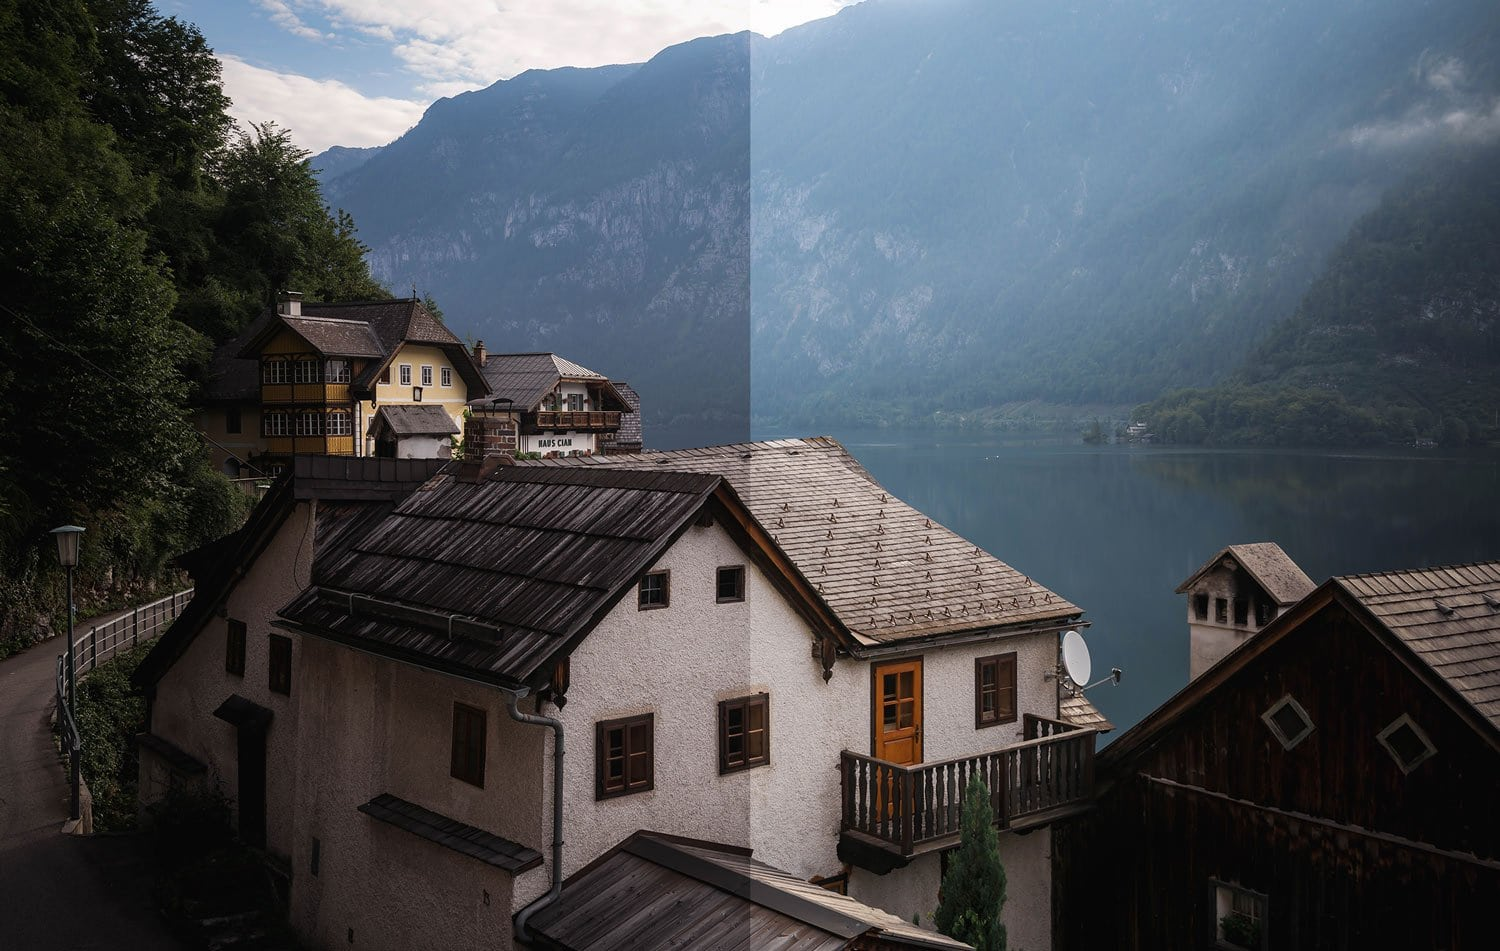 Misty-Mountain-Lake-Before-and-After-Lightroom-Edit-Cover